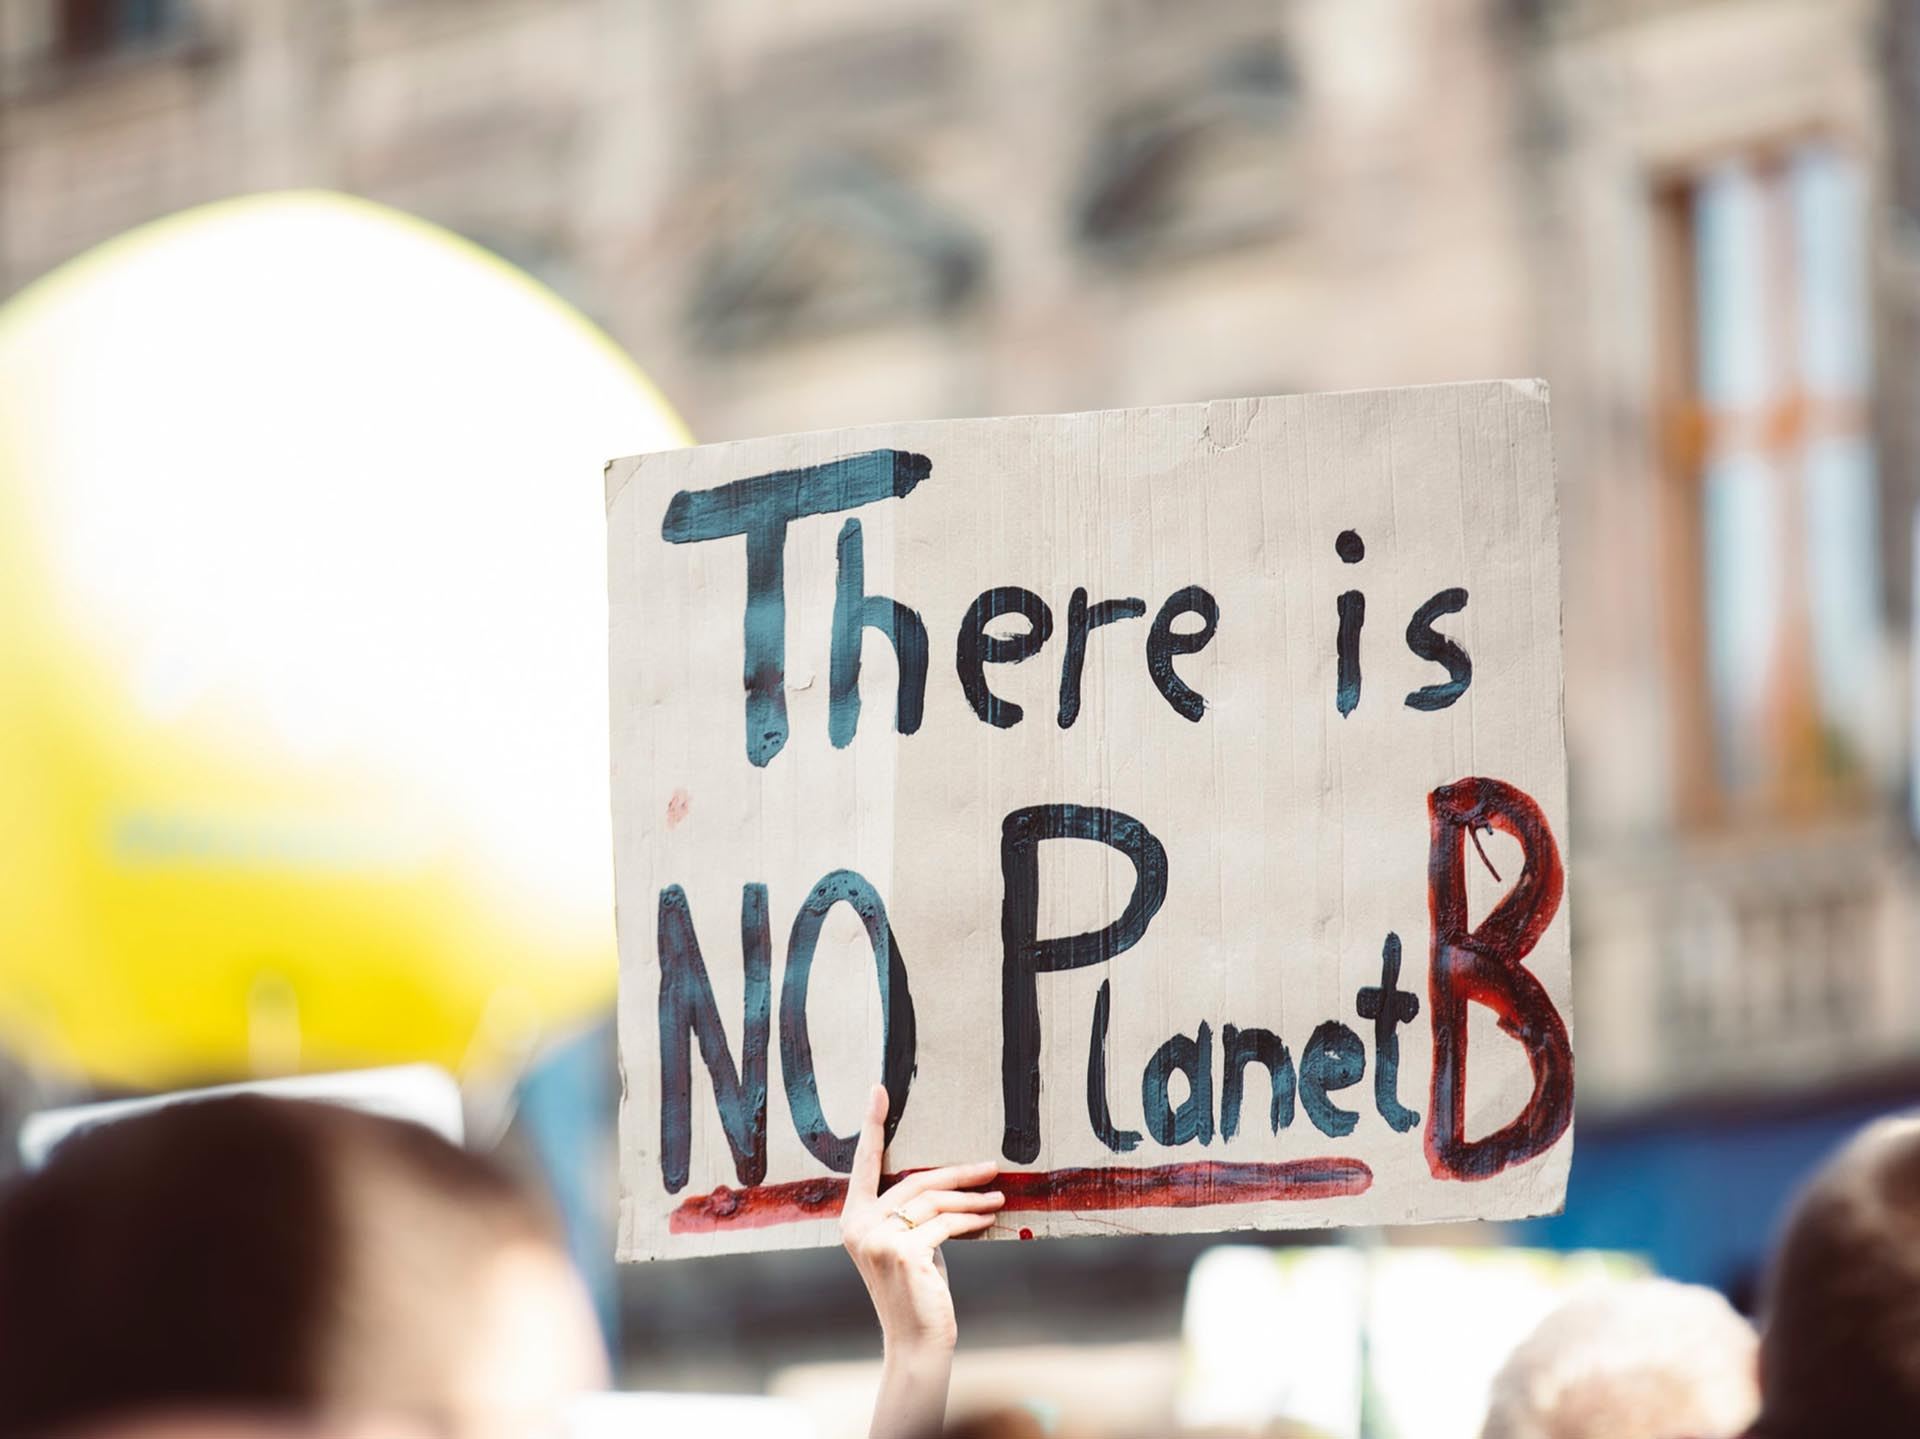 Homemade poster 'There is no planet B' being held at a demonstration